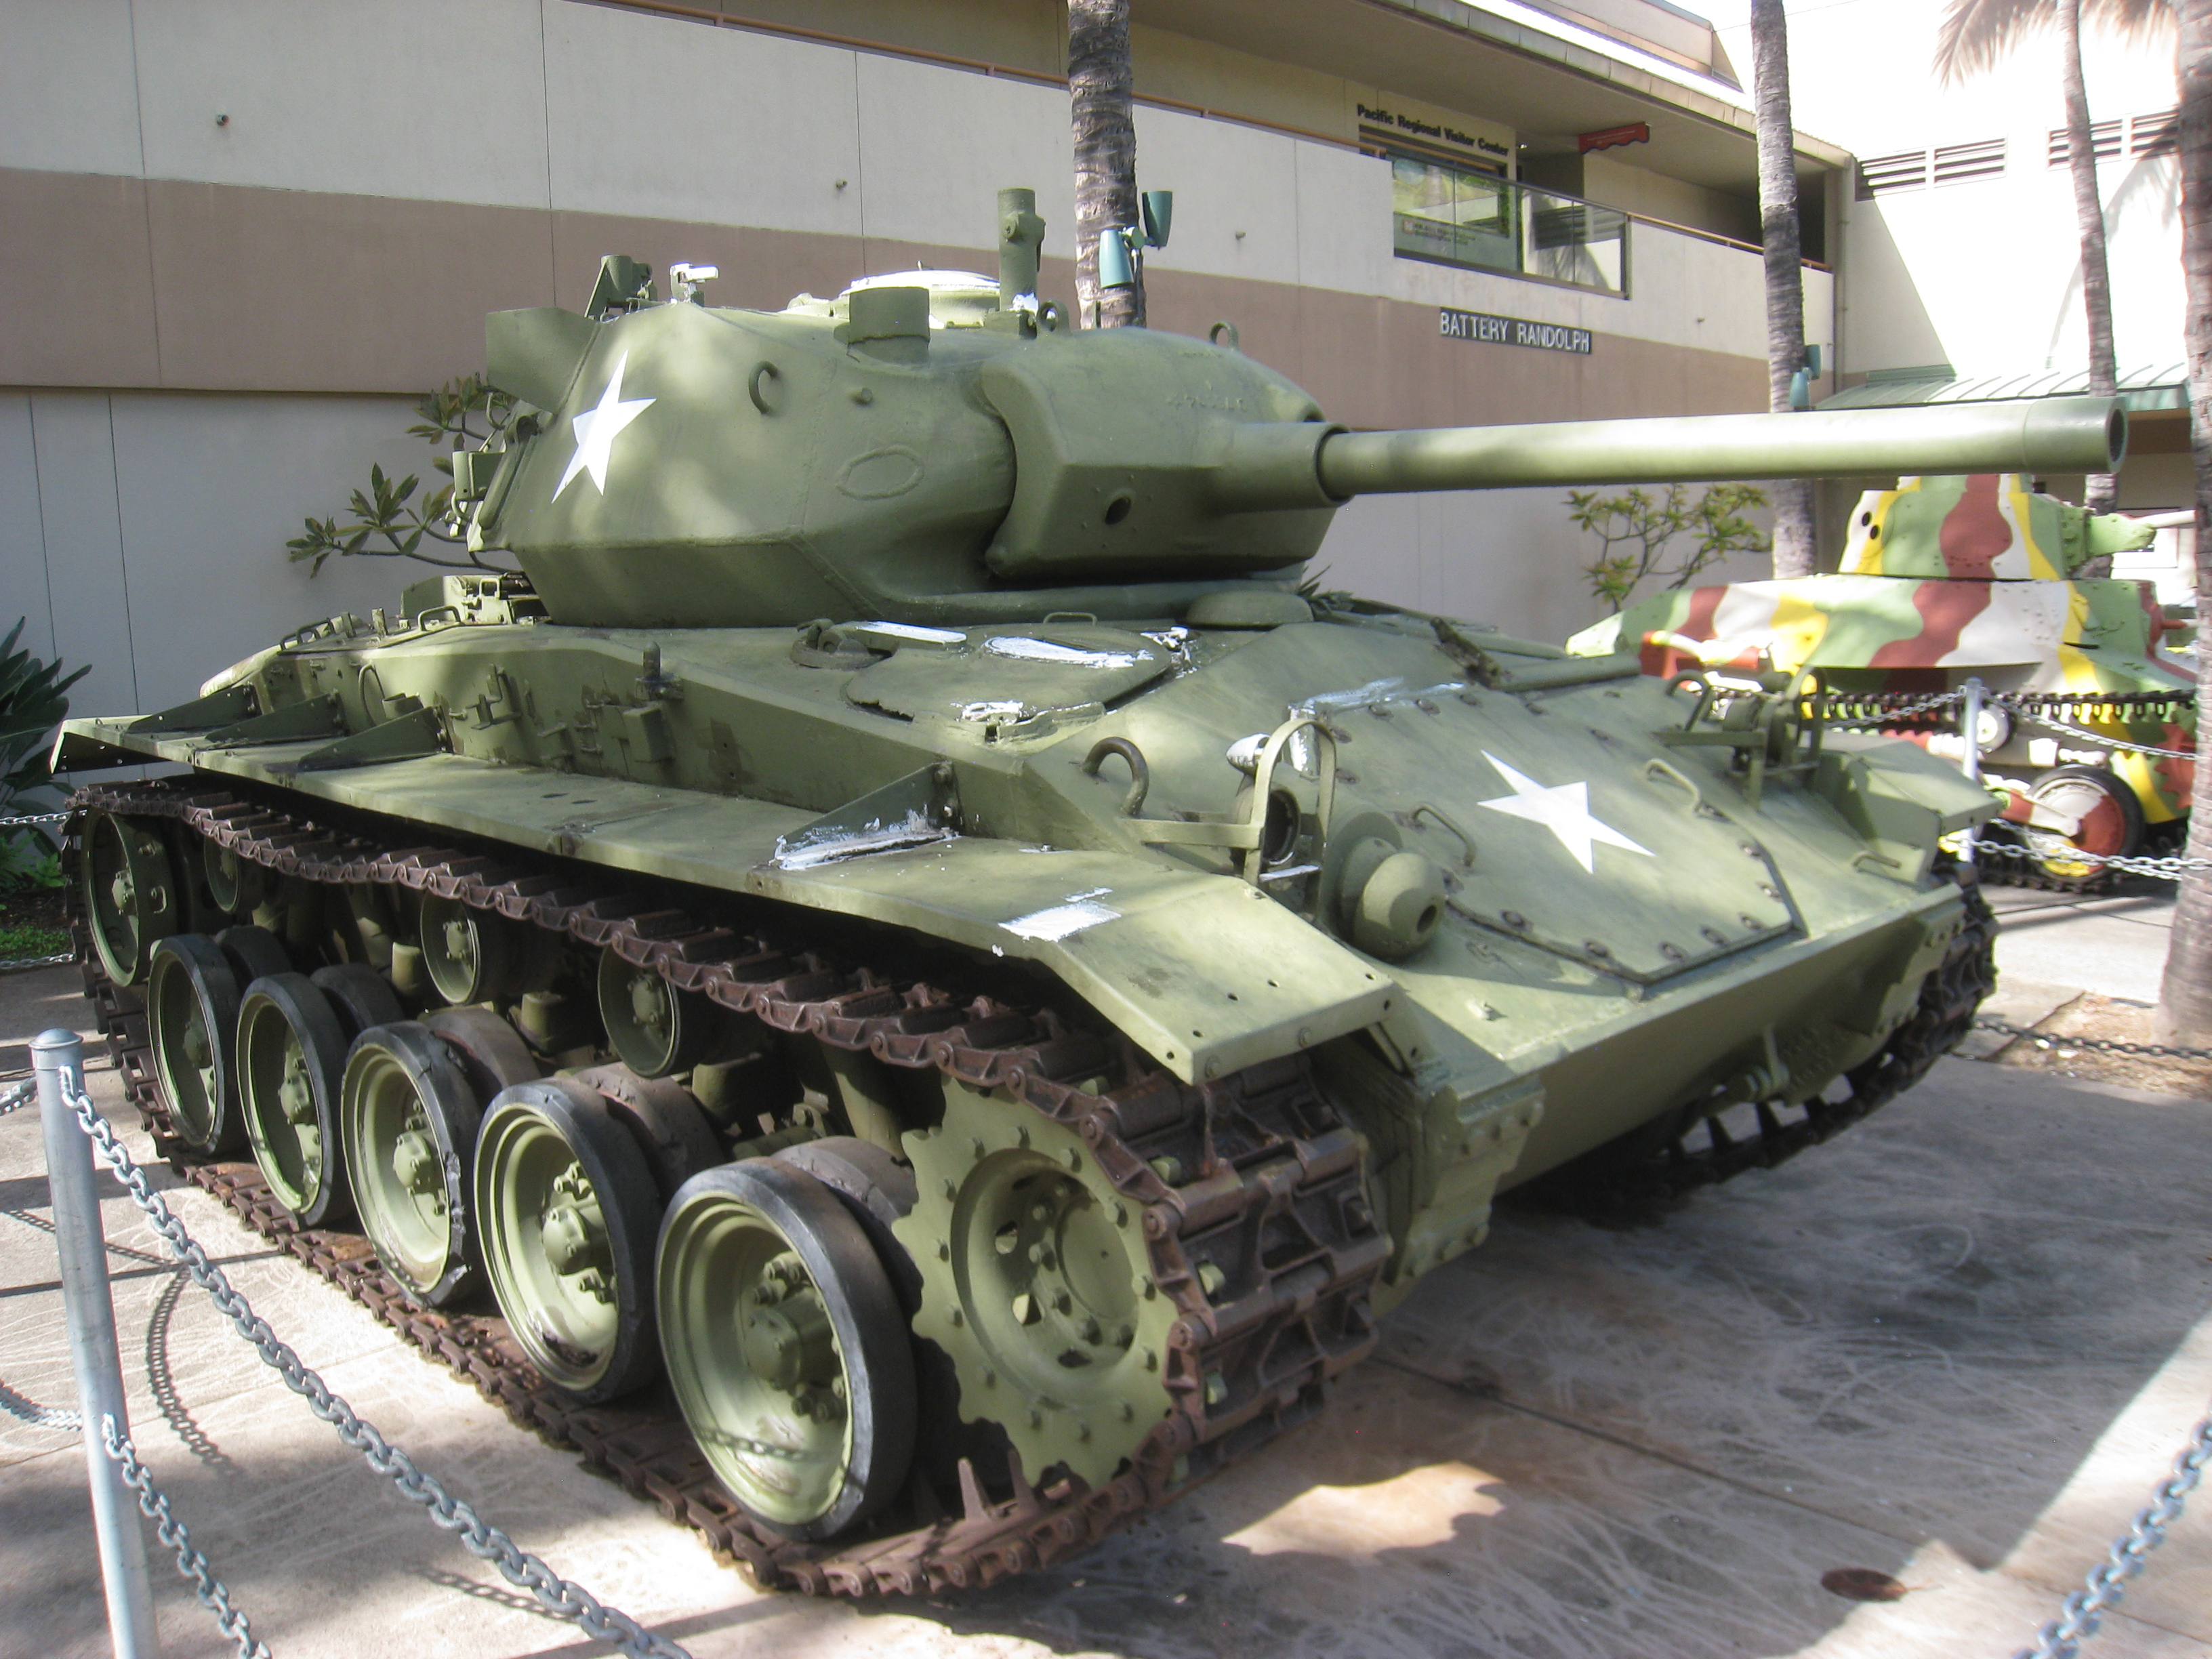 FileUS Army Museum Of Hawaii IMG JPG Wikimedia Commons - Military museums in us